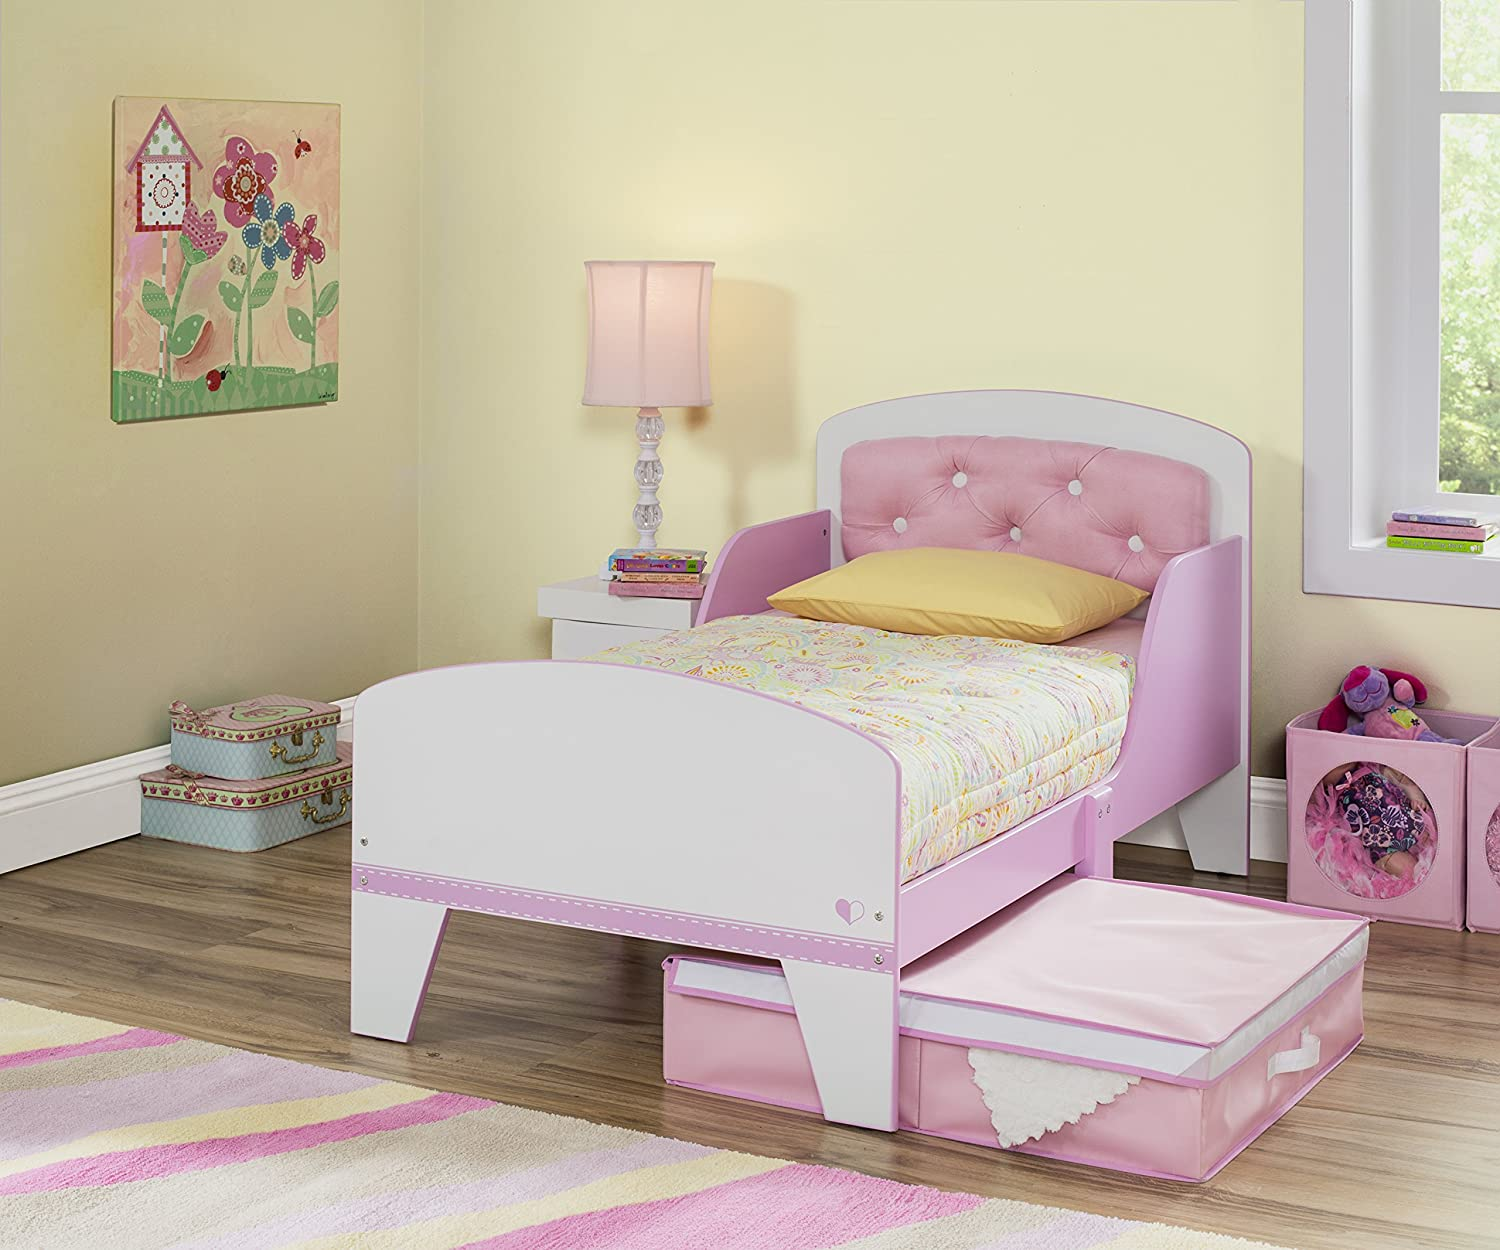 wonderful beds walmart craftsmanbb ideas bed to twin with for good create storage girl design toddler kids